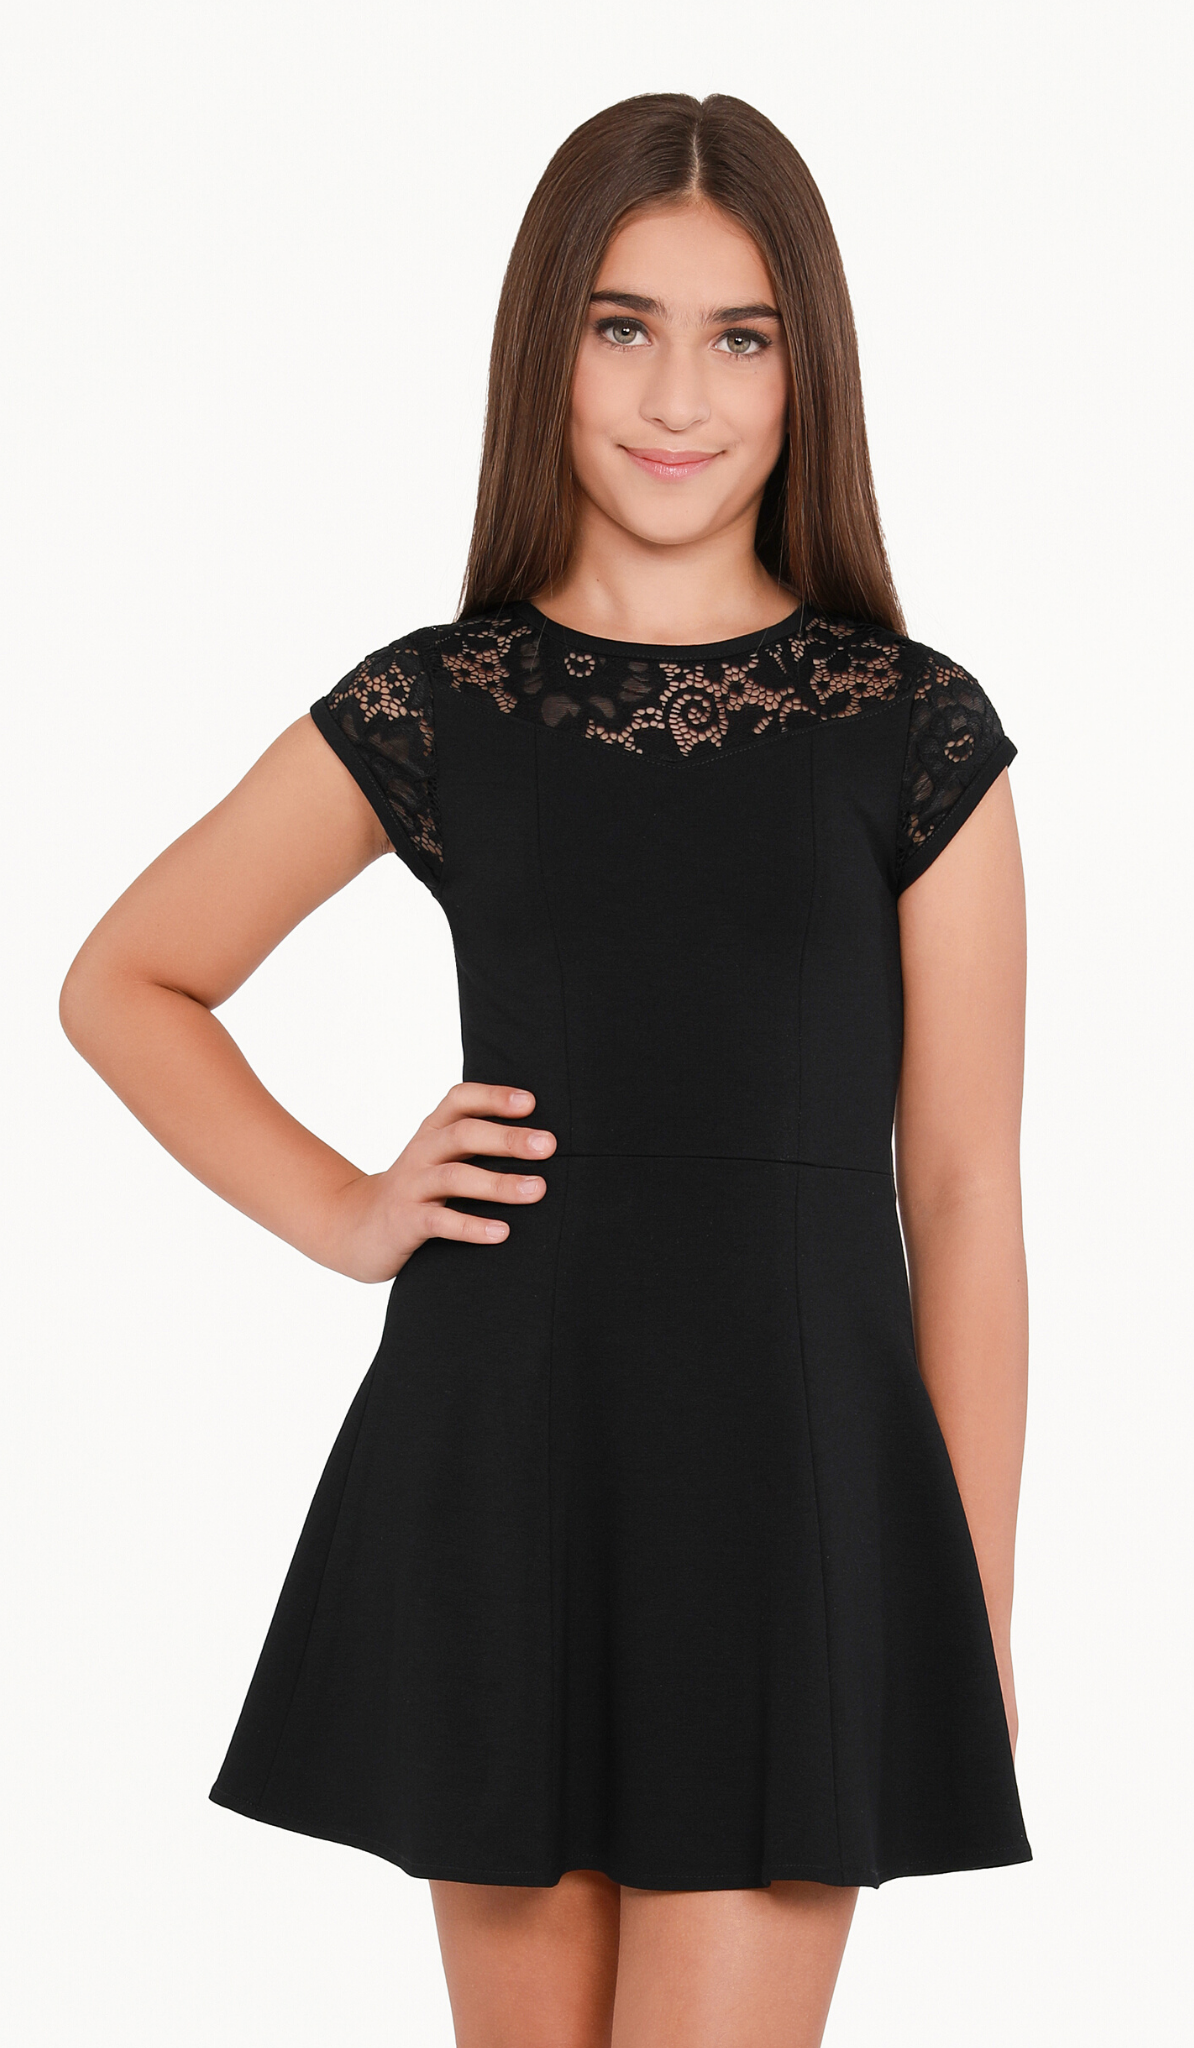 Sally Miller Jackie Dress - Black stretch super ponti six panel dress with stretch lace yoke and cap sleeve with zipper at back